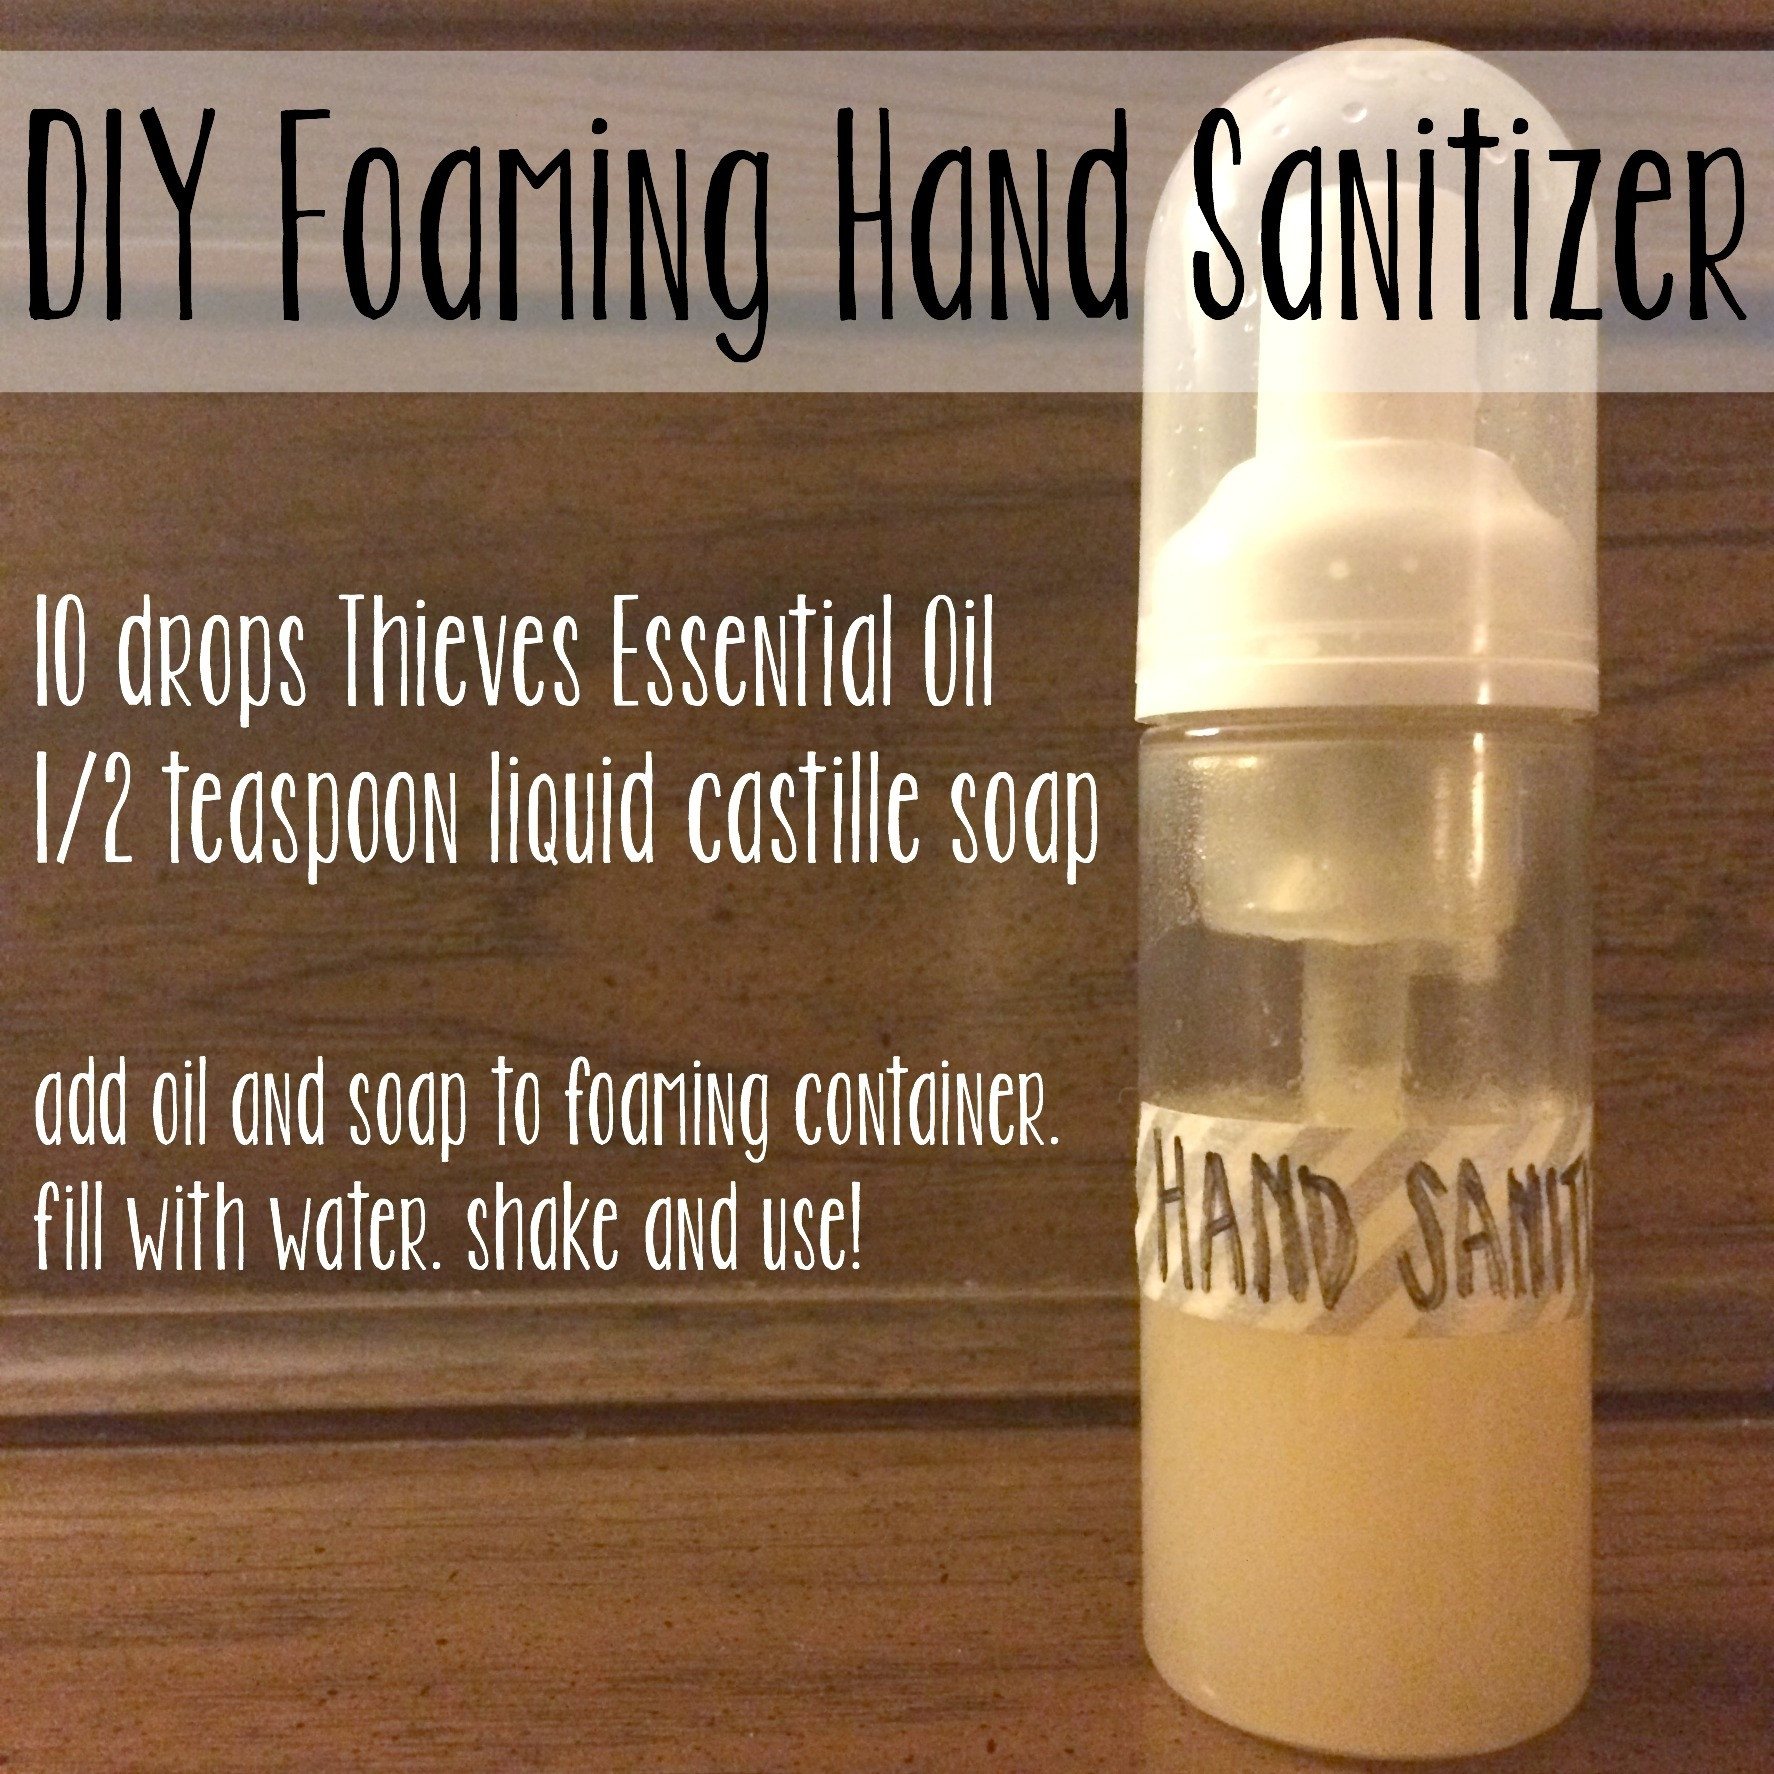 Best ideas about DIY Hand Sanitizer . Save or Pin [31 Days] Day 7 DIY Foaming Hand Sanitizer Now.